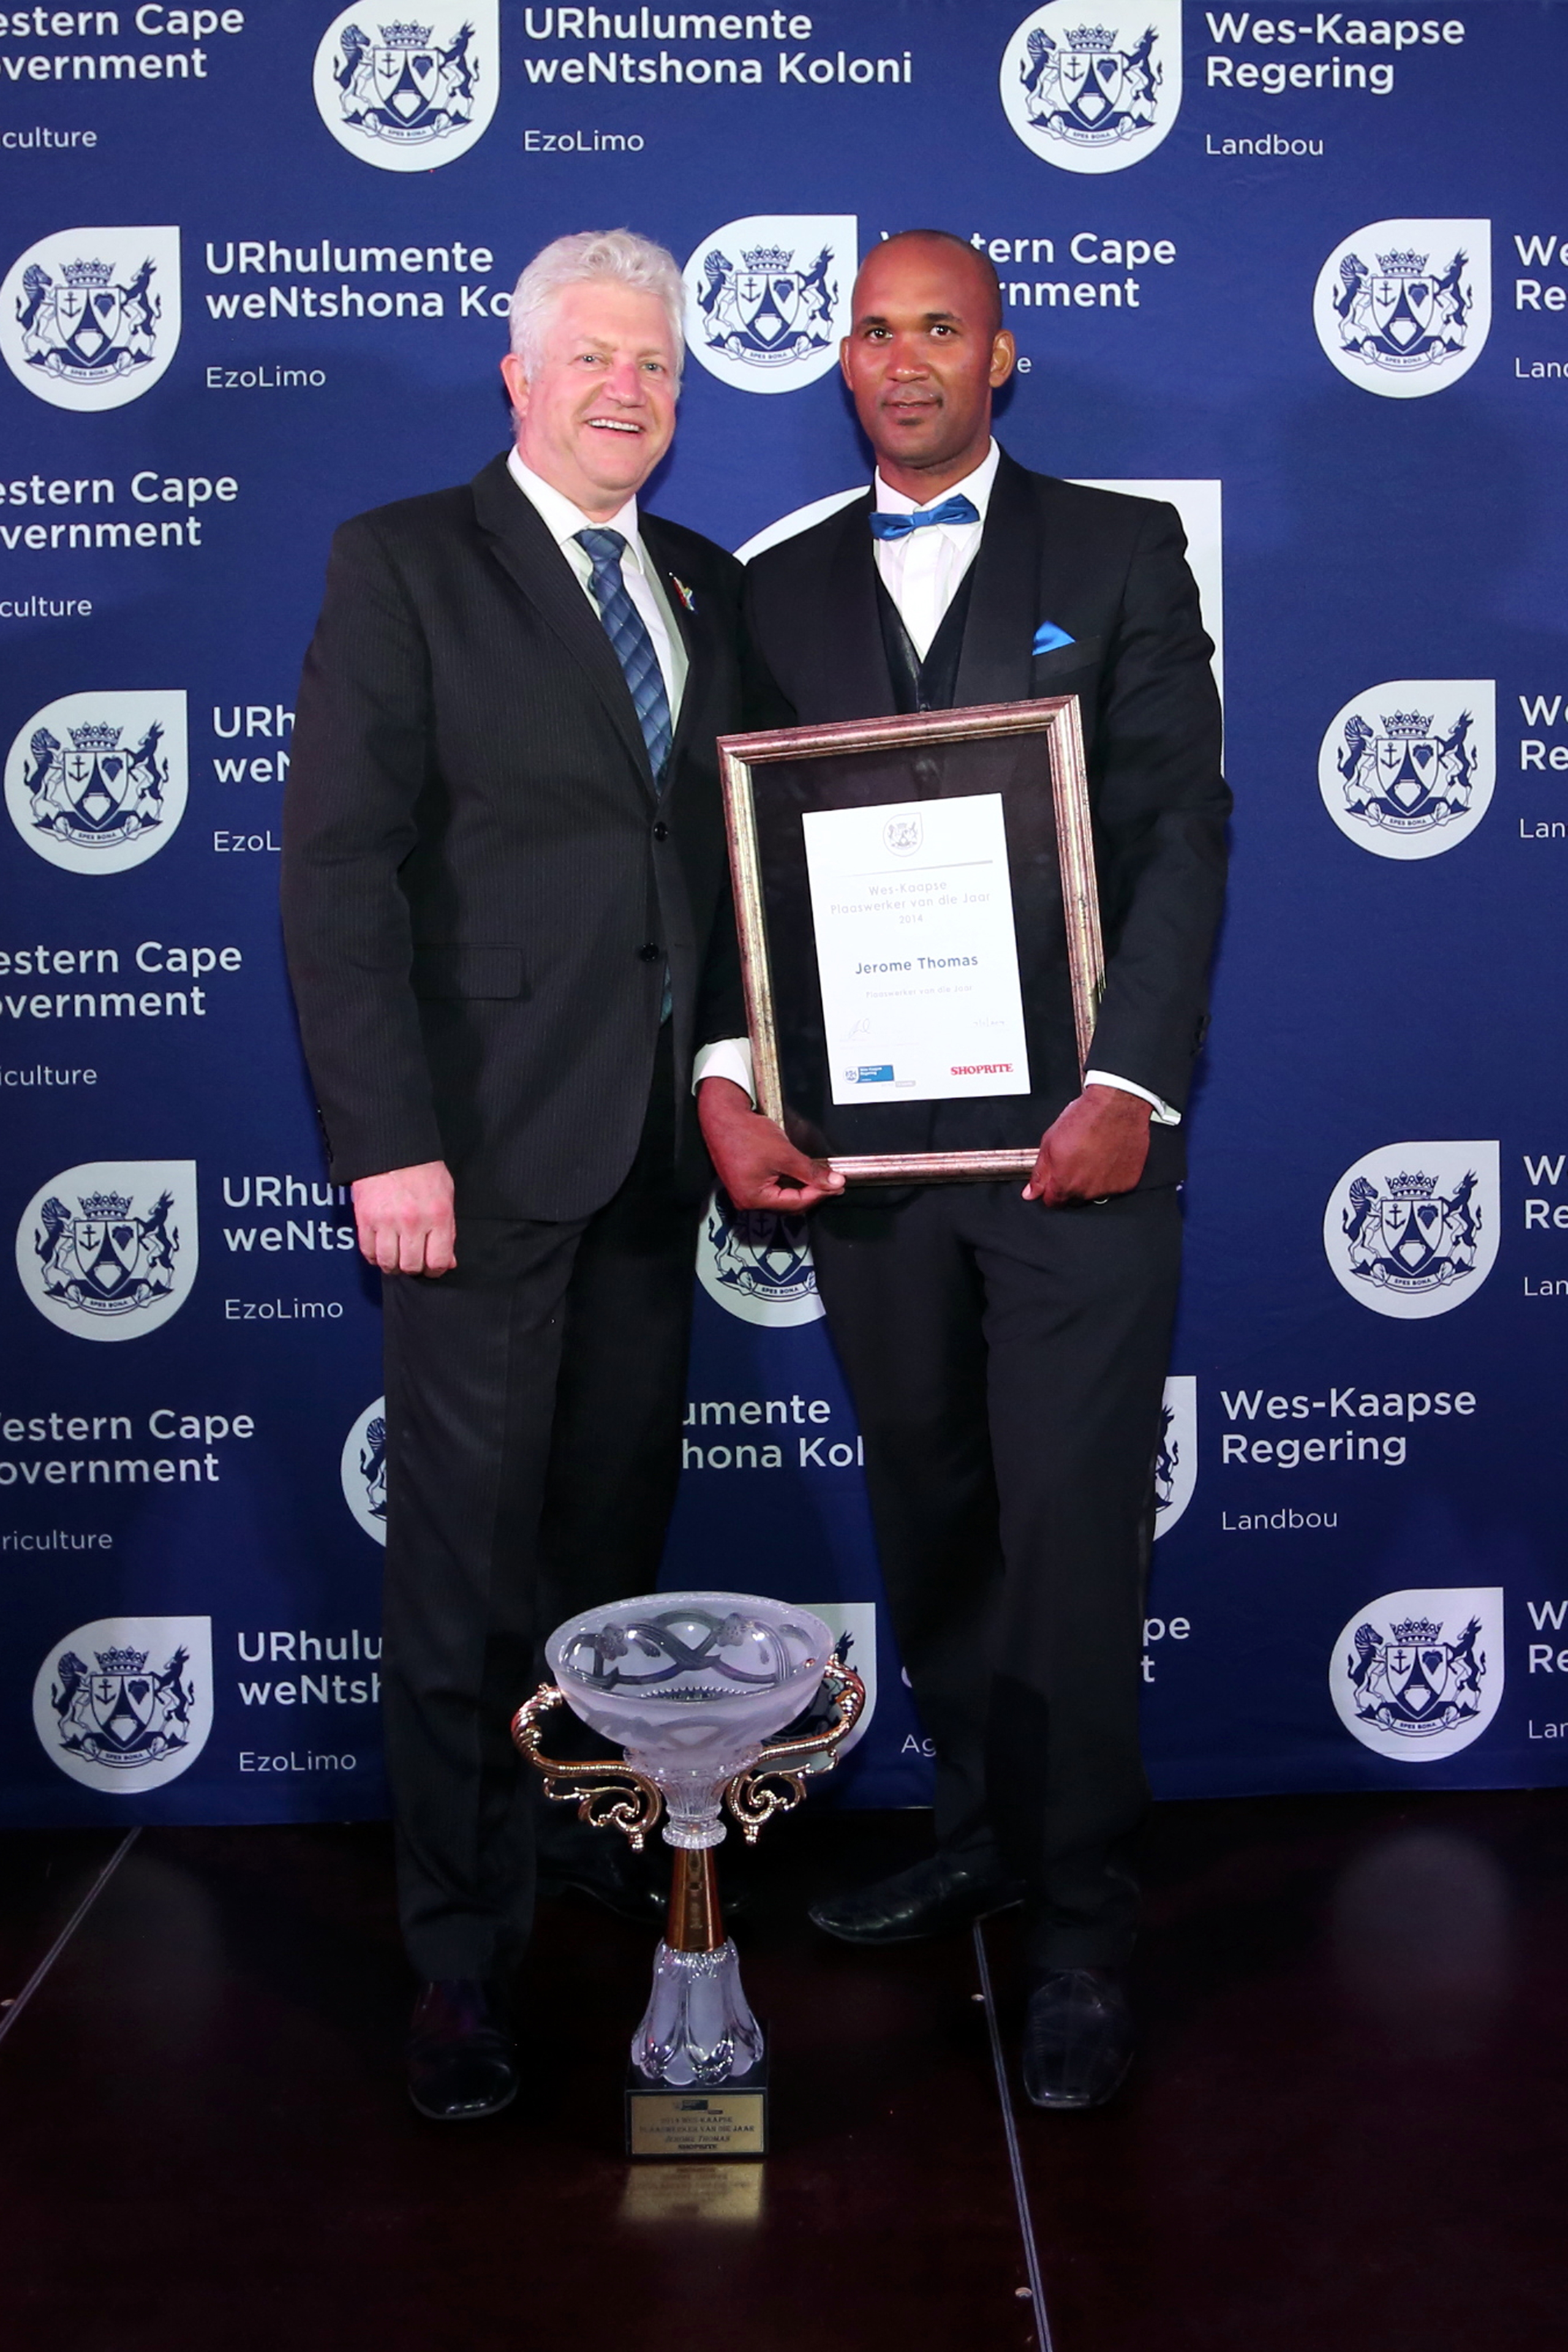 Alan Winde, Minister of Economic Opportunities with winner Jerome Thomas (photo by Piet van Wyk)